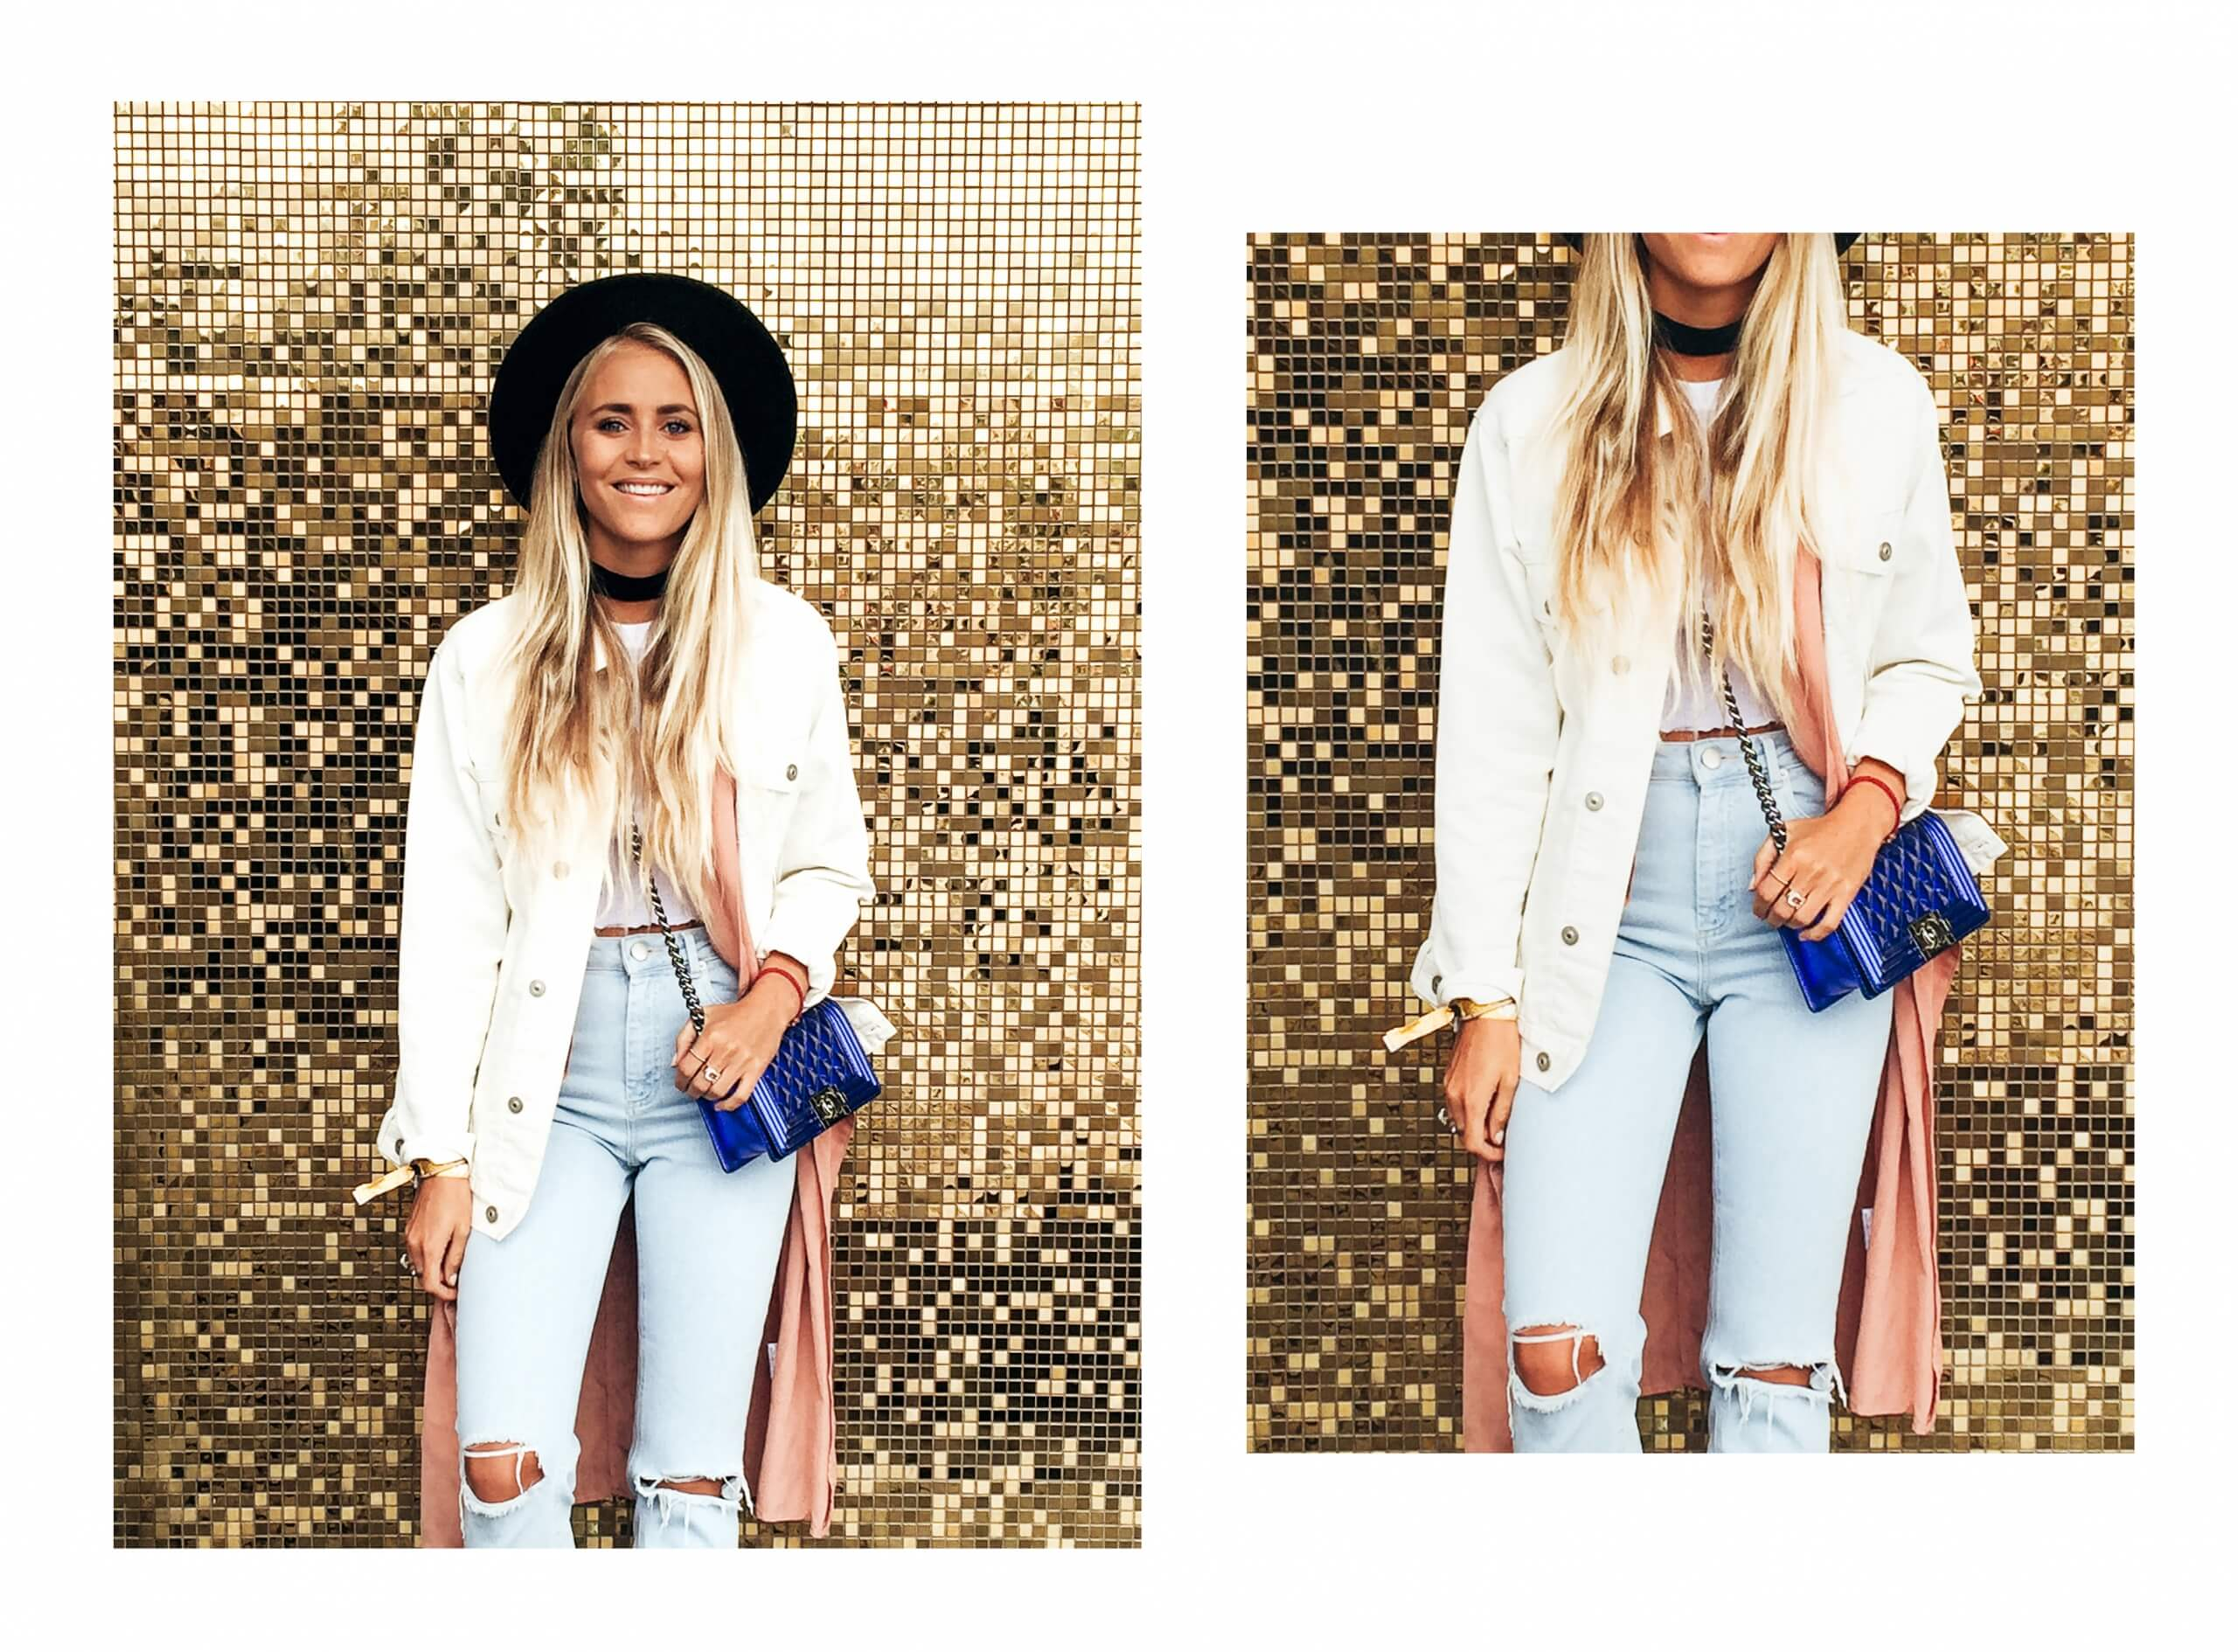 janni-deler-asos-day-two-wowIMG_4201 copy